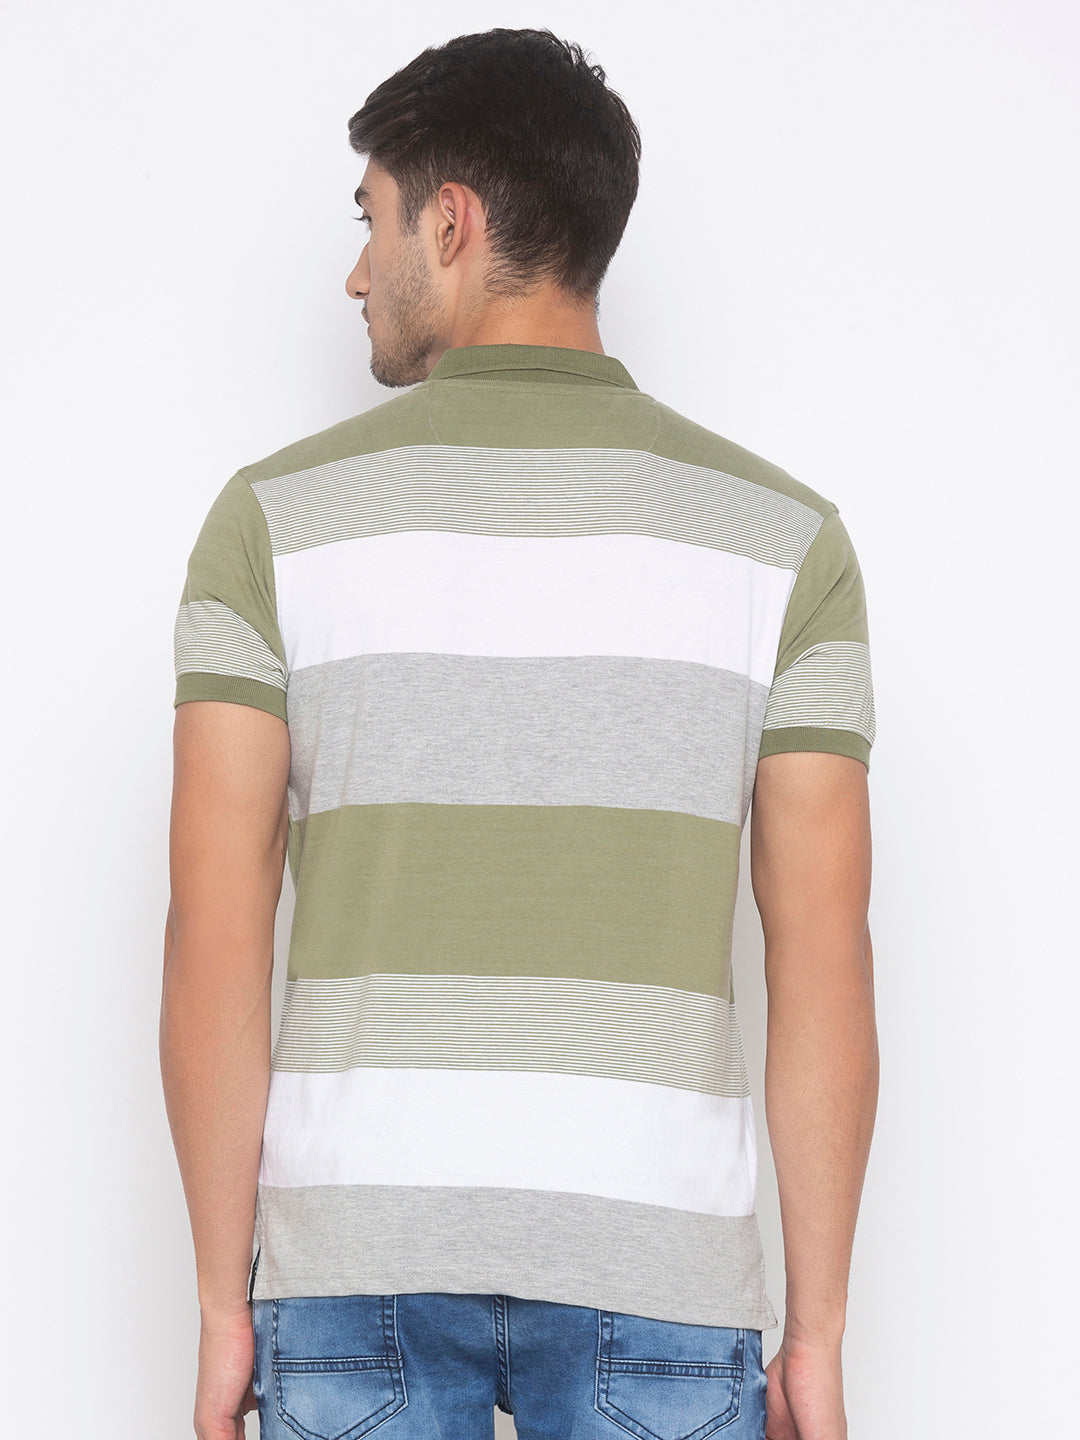 Globus Olive & White Striped T-Shirt-3